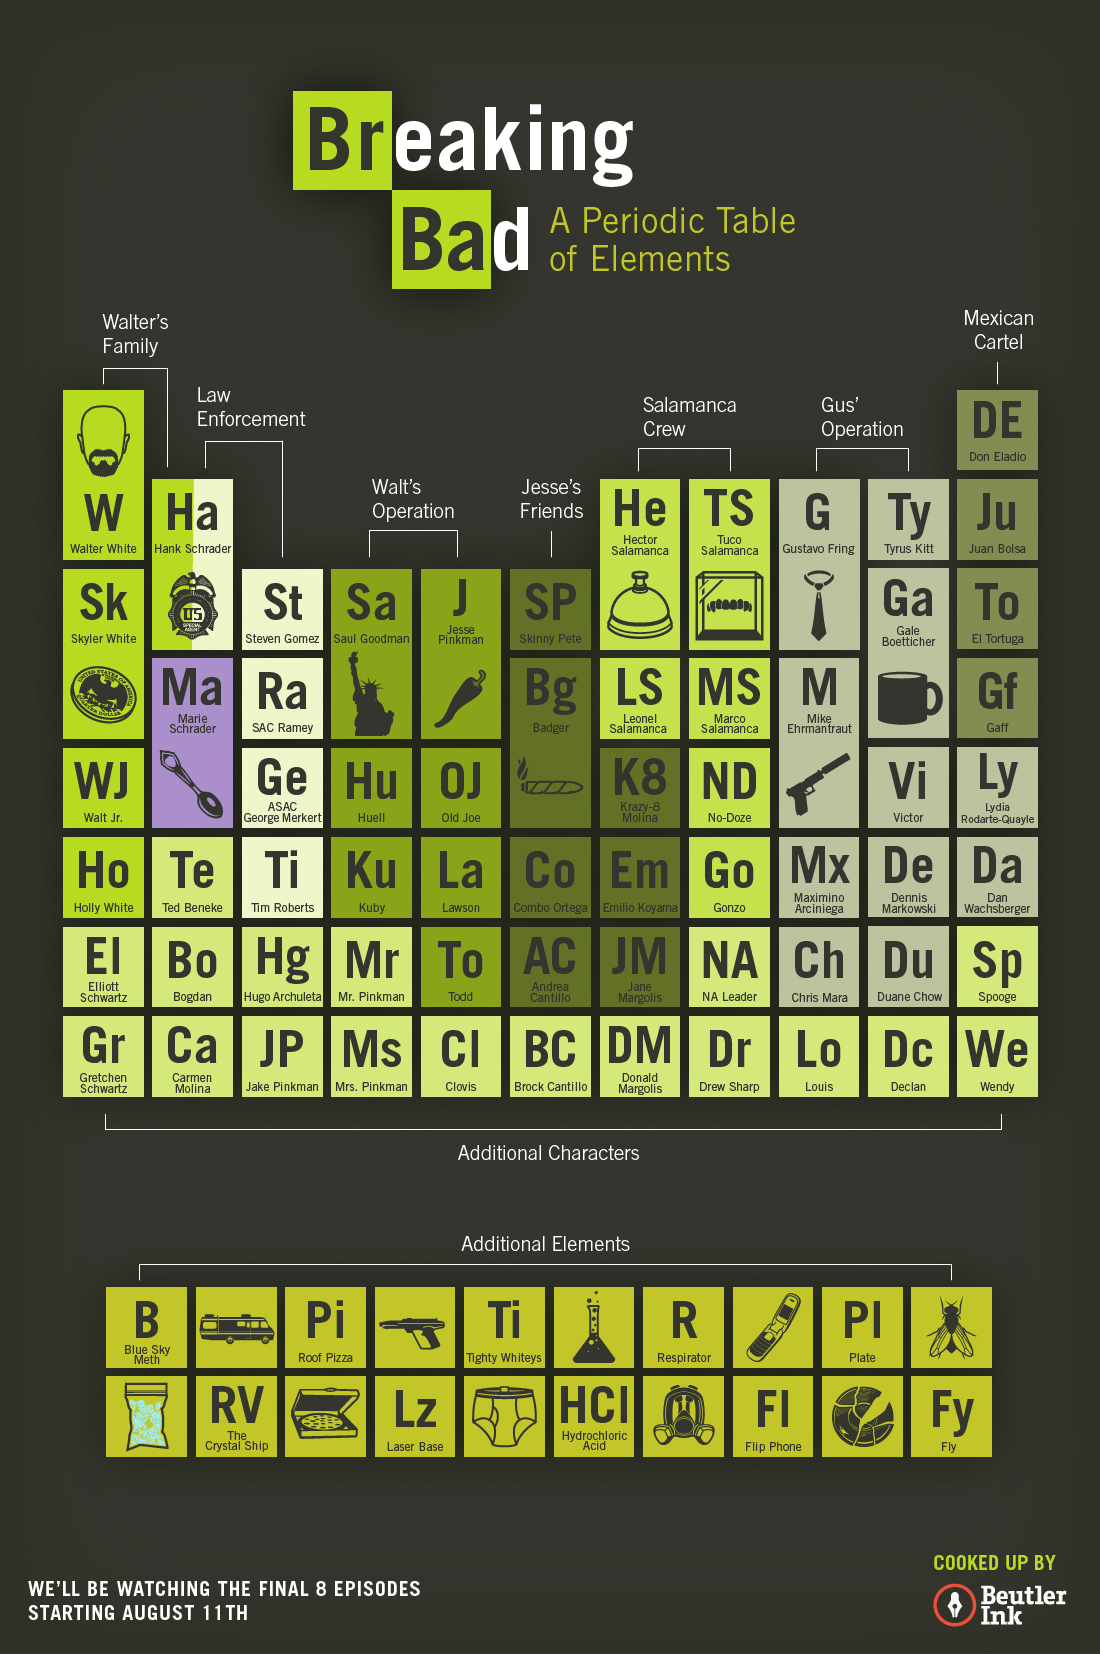 Breaking bad periodic table charting the elements of walt and breaking bad infographic gamestrikefo Image collections